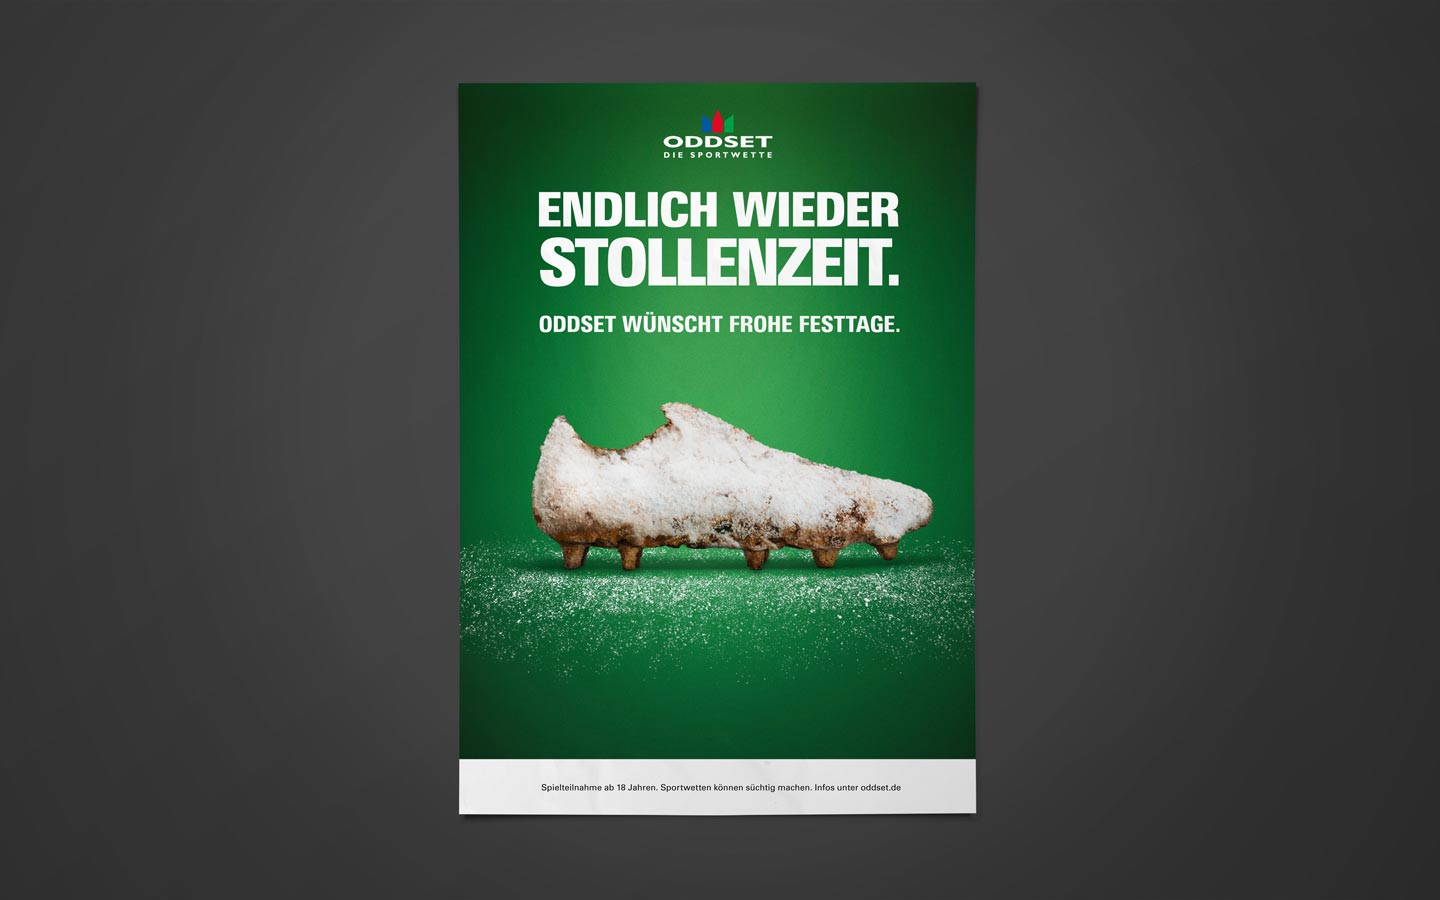 Maximilian_Stengl_Oddset_Stollenschuh_1440_01